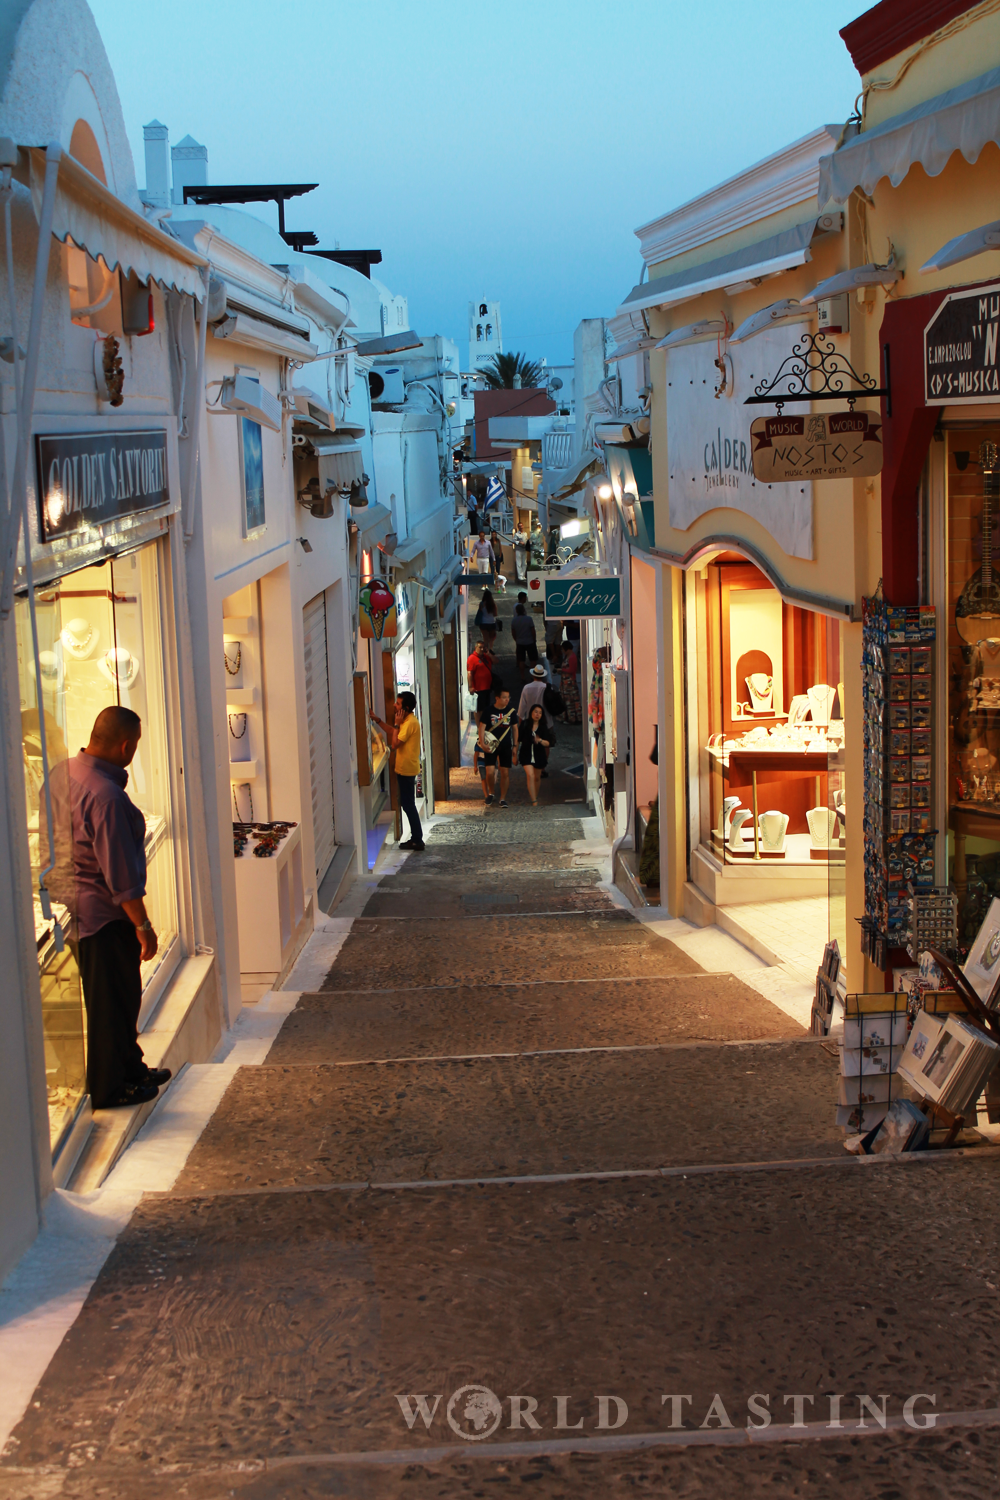 Small streets and jewelry shops are typical for Fira